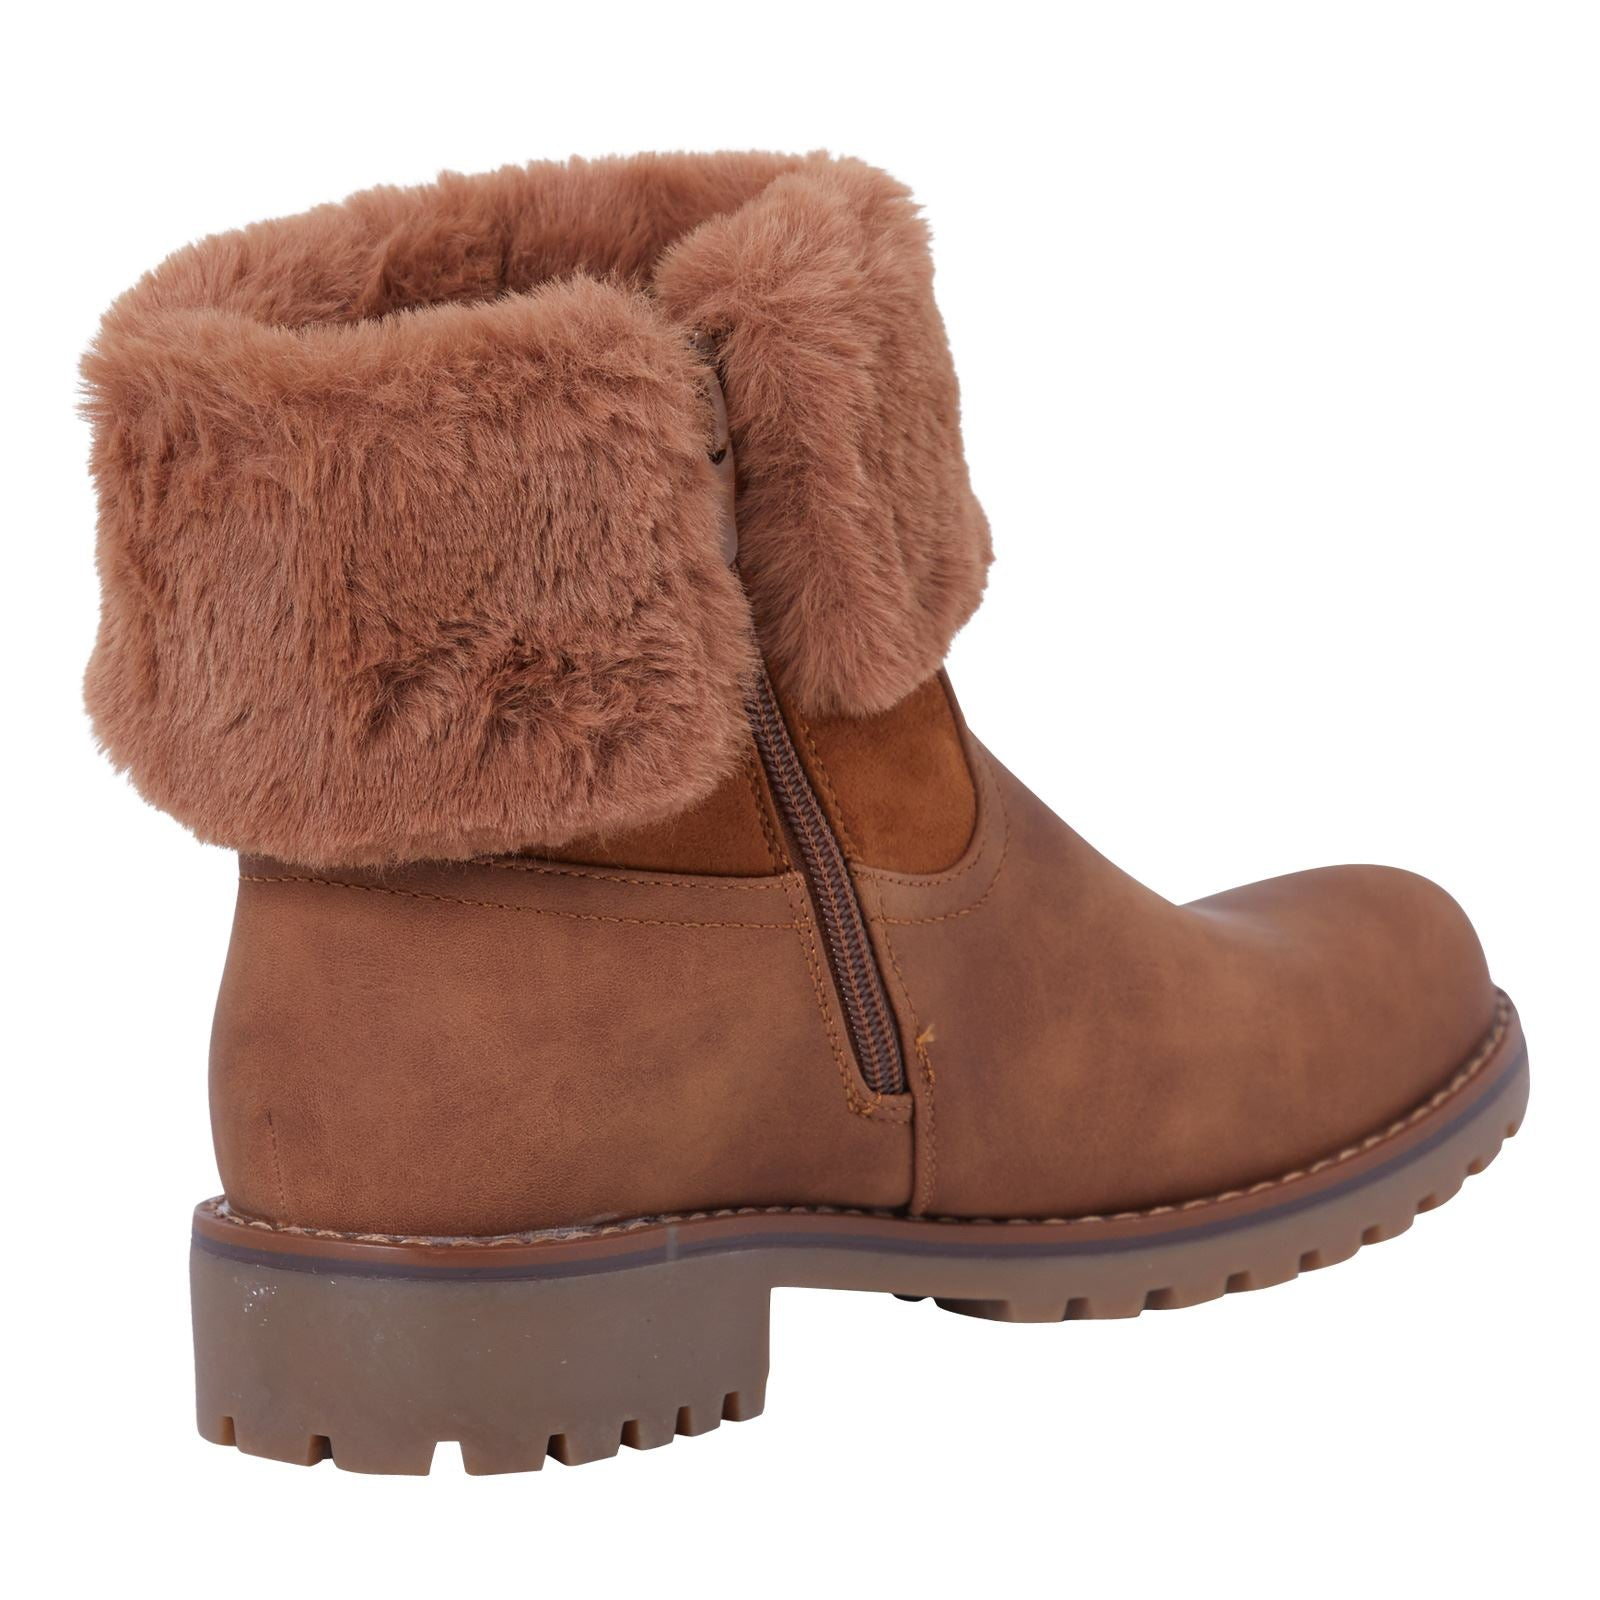 Annalee Fur Lined Ankle Boots in Camel Nubuck - Feet First Fashion